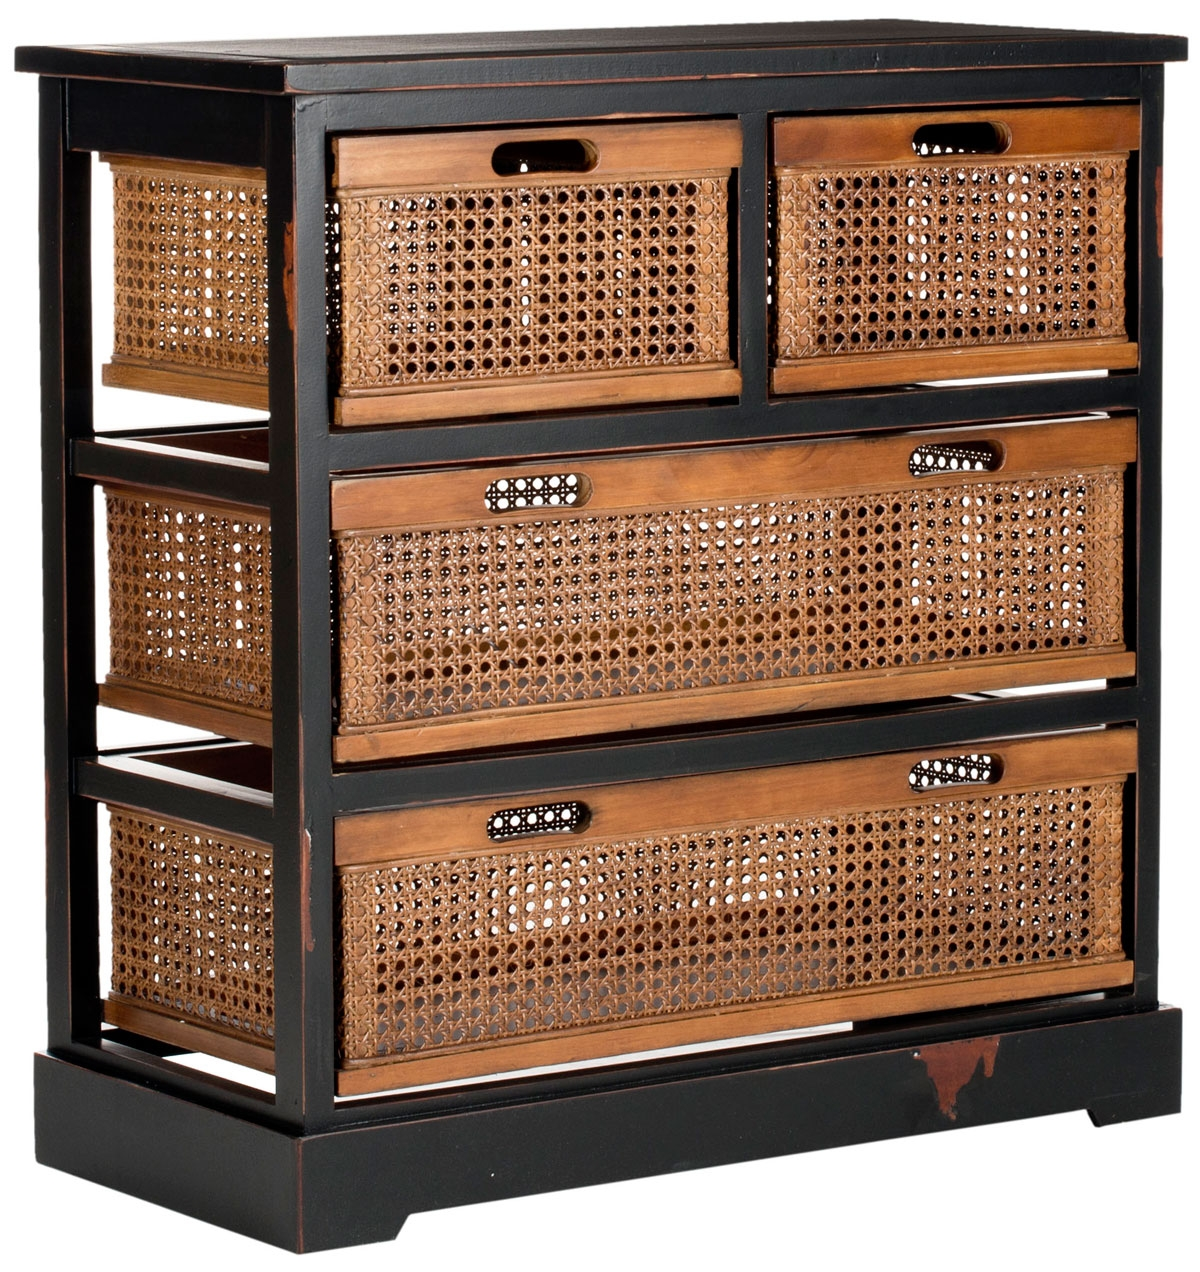 Black Wooden Storage Cabinet With Wicker Baskets